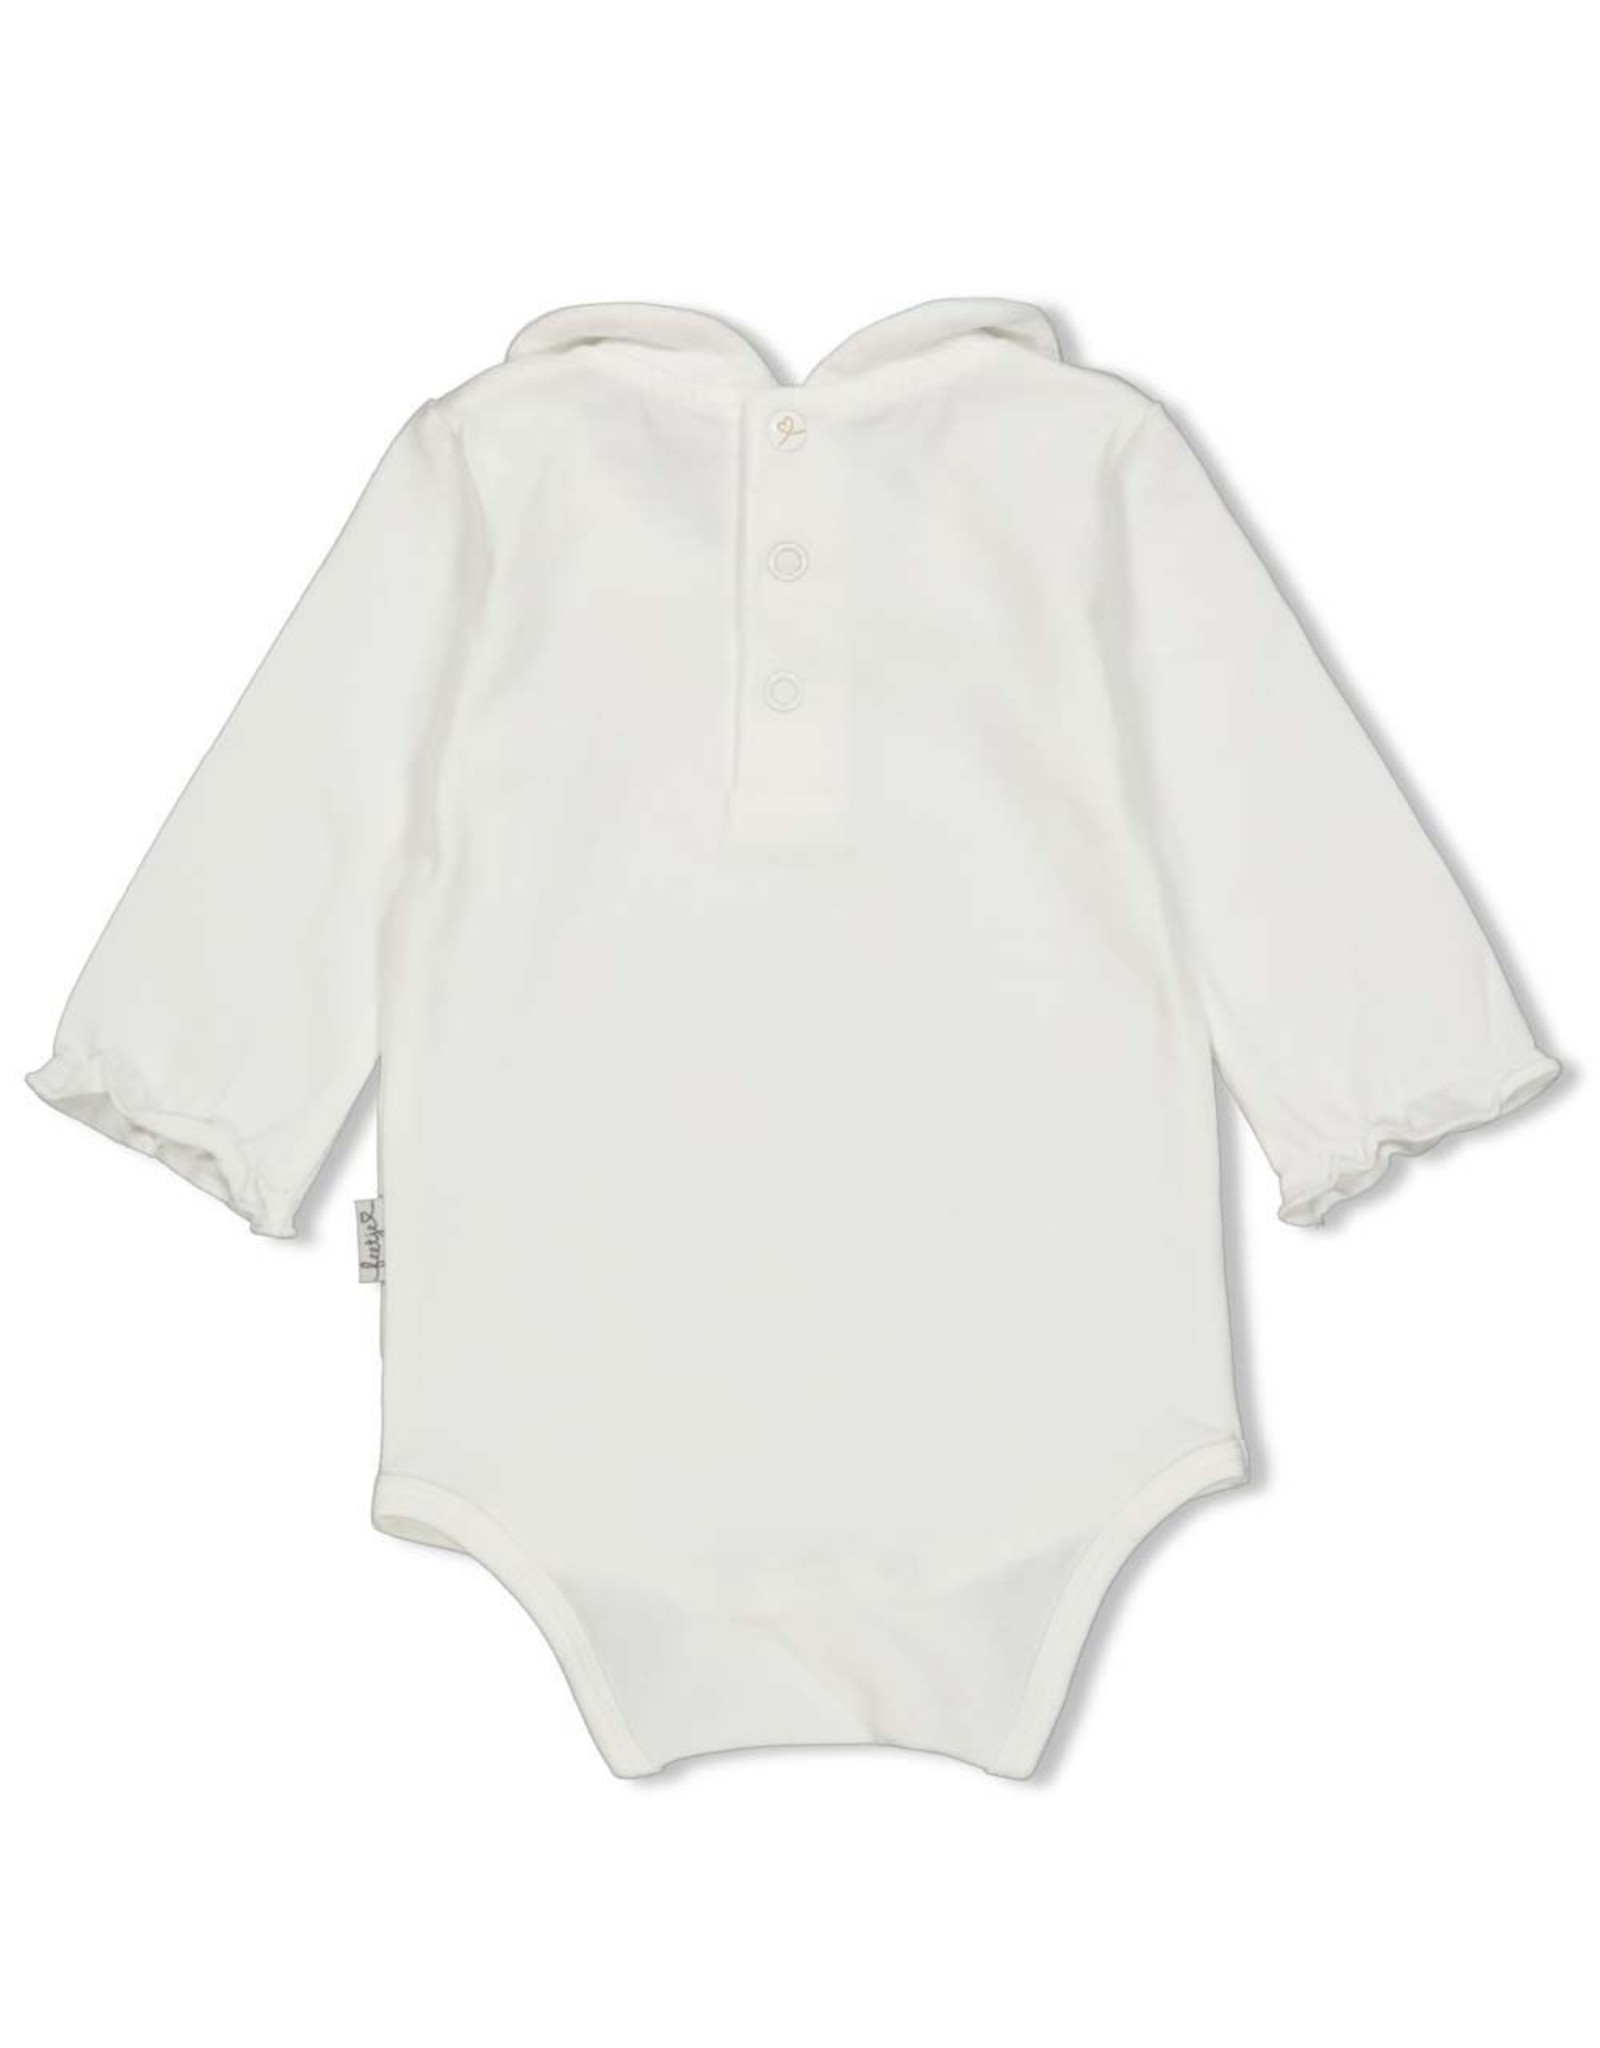 Feetje Romper - Panther Cutie Offwhite